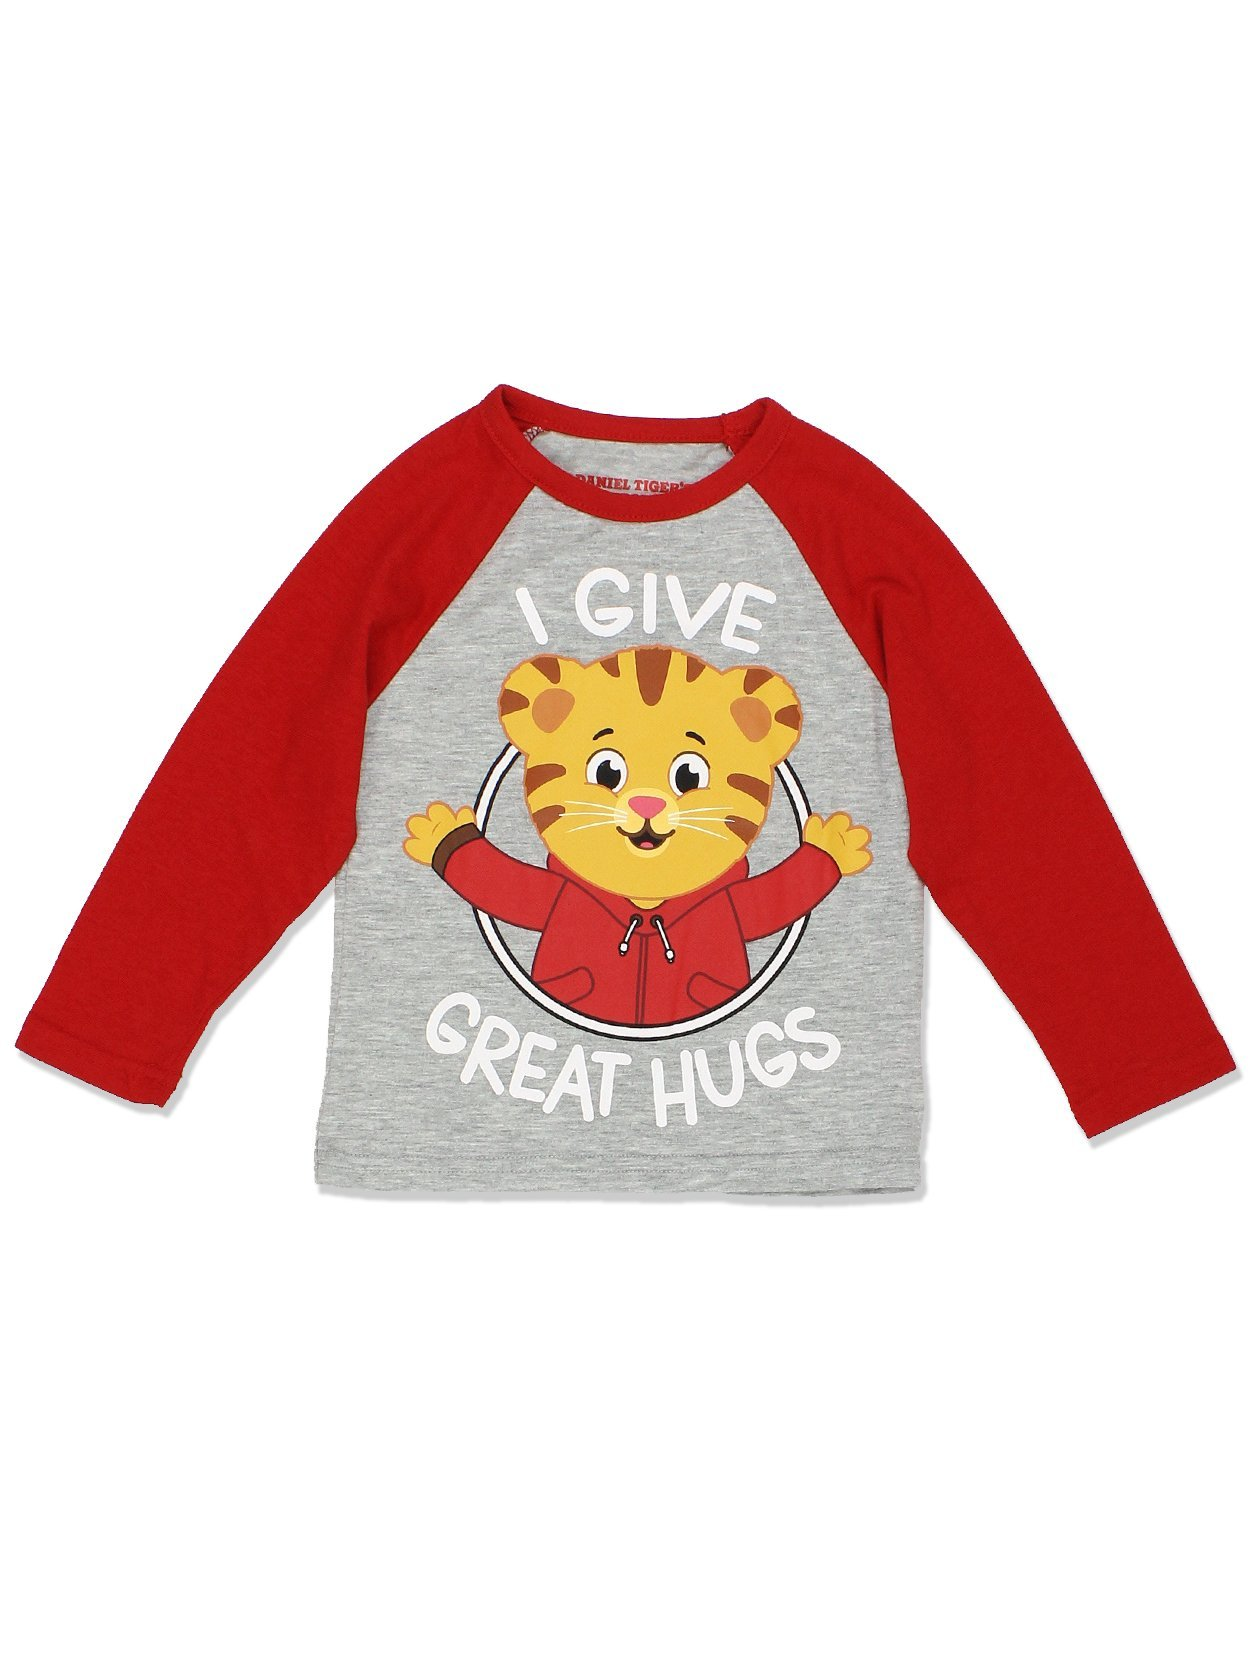 Daniel Tiger Toddler Boys Girls Long Sleeve Tee (2T, Red/Grey) by Daniel Tiger